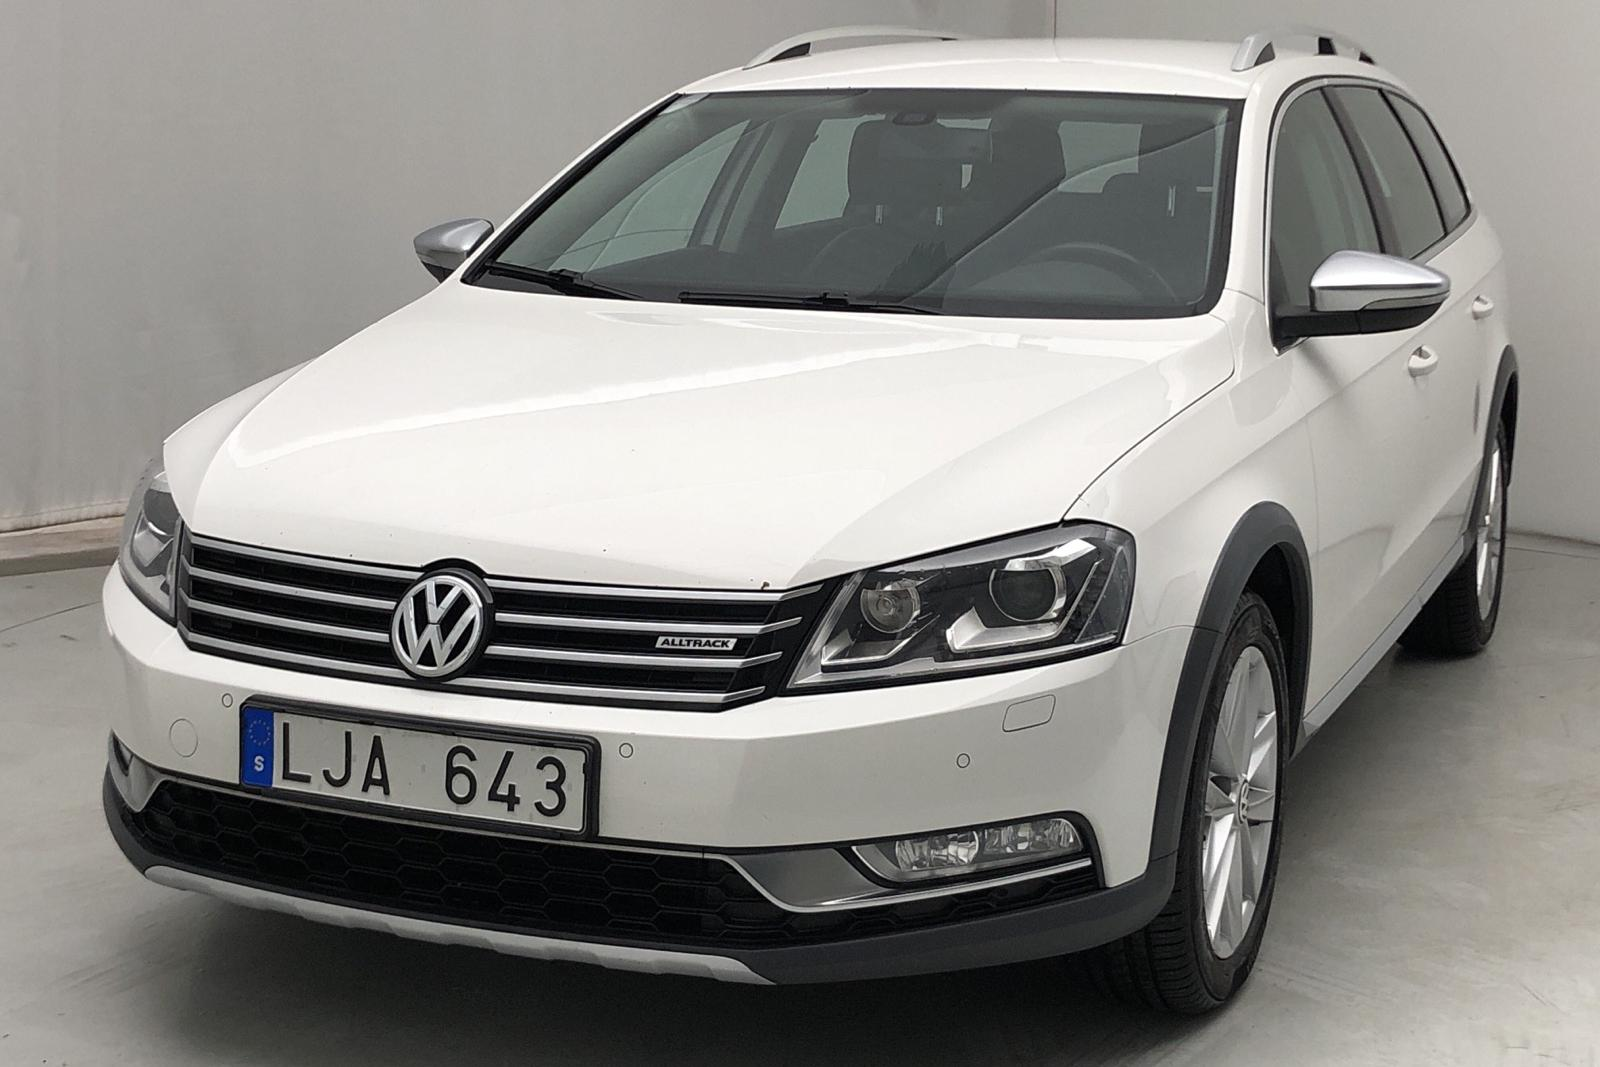 VW Passat Alltrack 2.0 TDI BlueMotion Technology 4Motion (177hk) - 0 km - Automatic - white - 2014